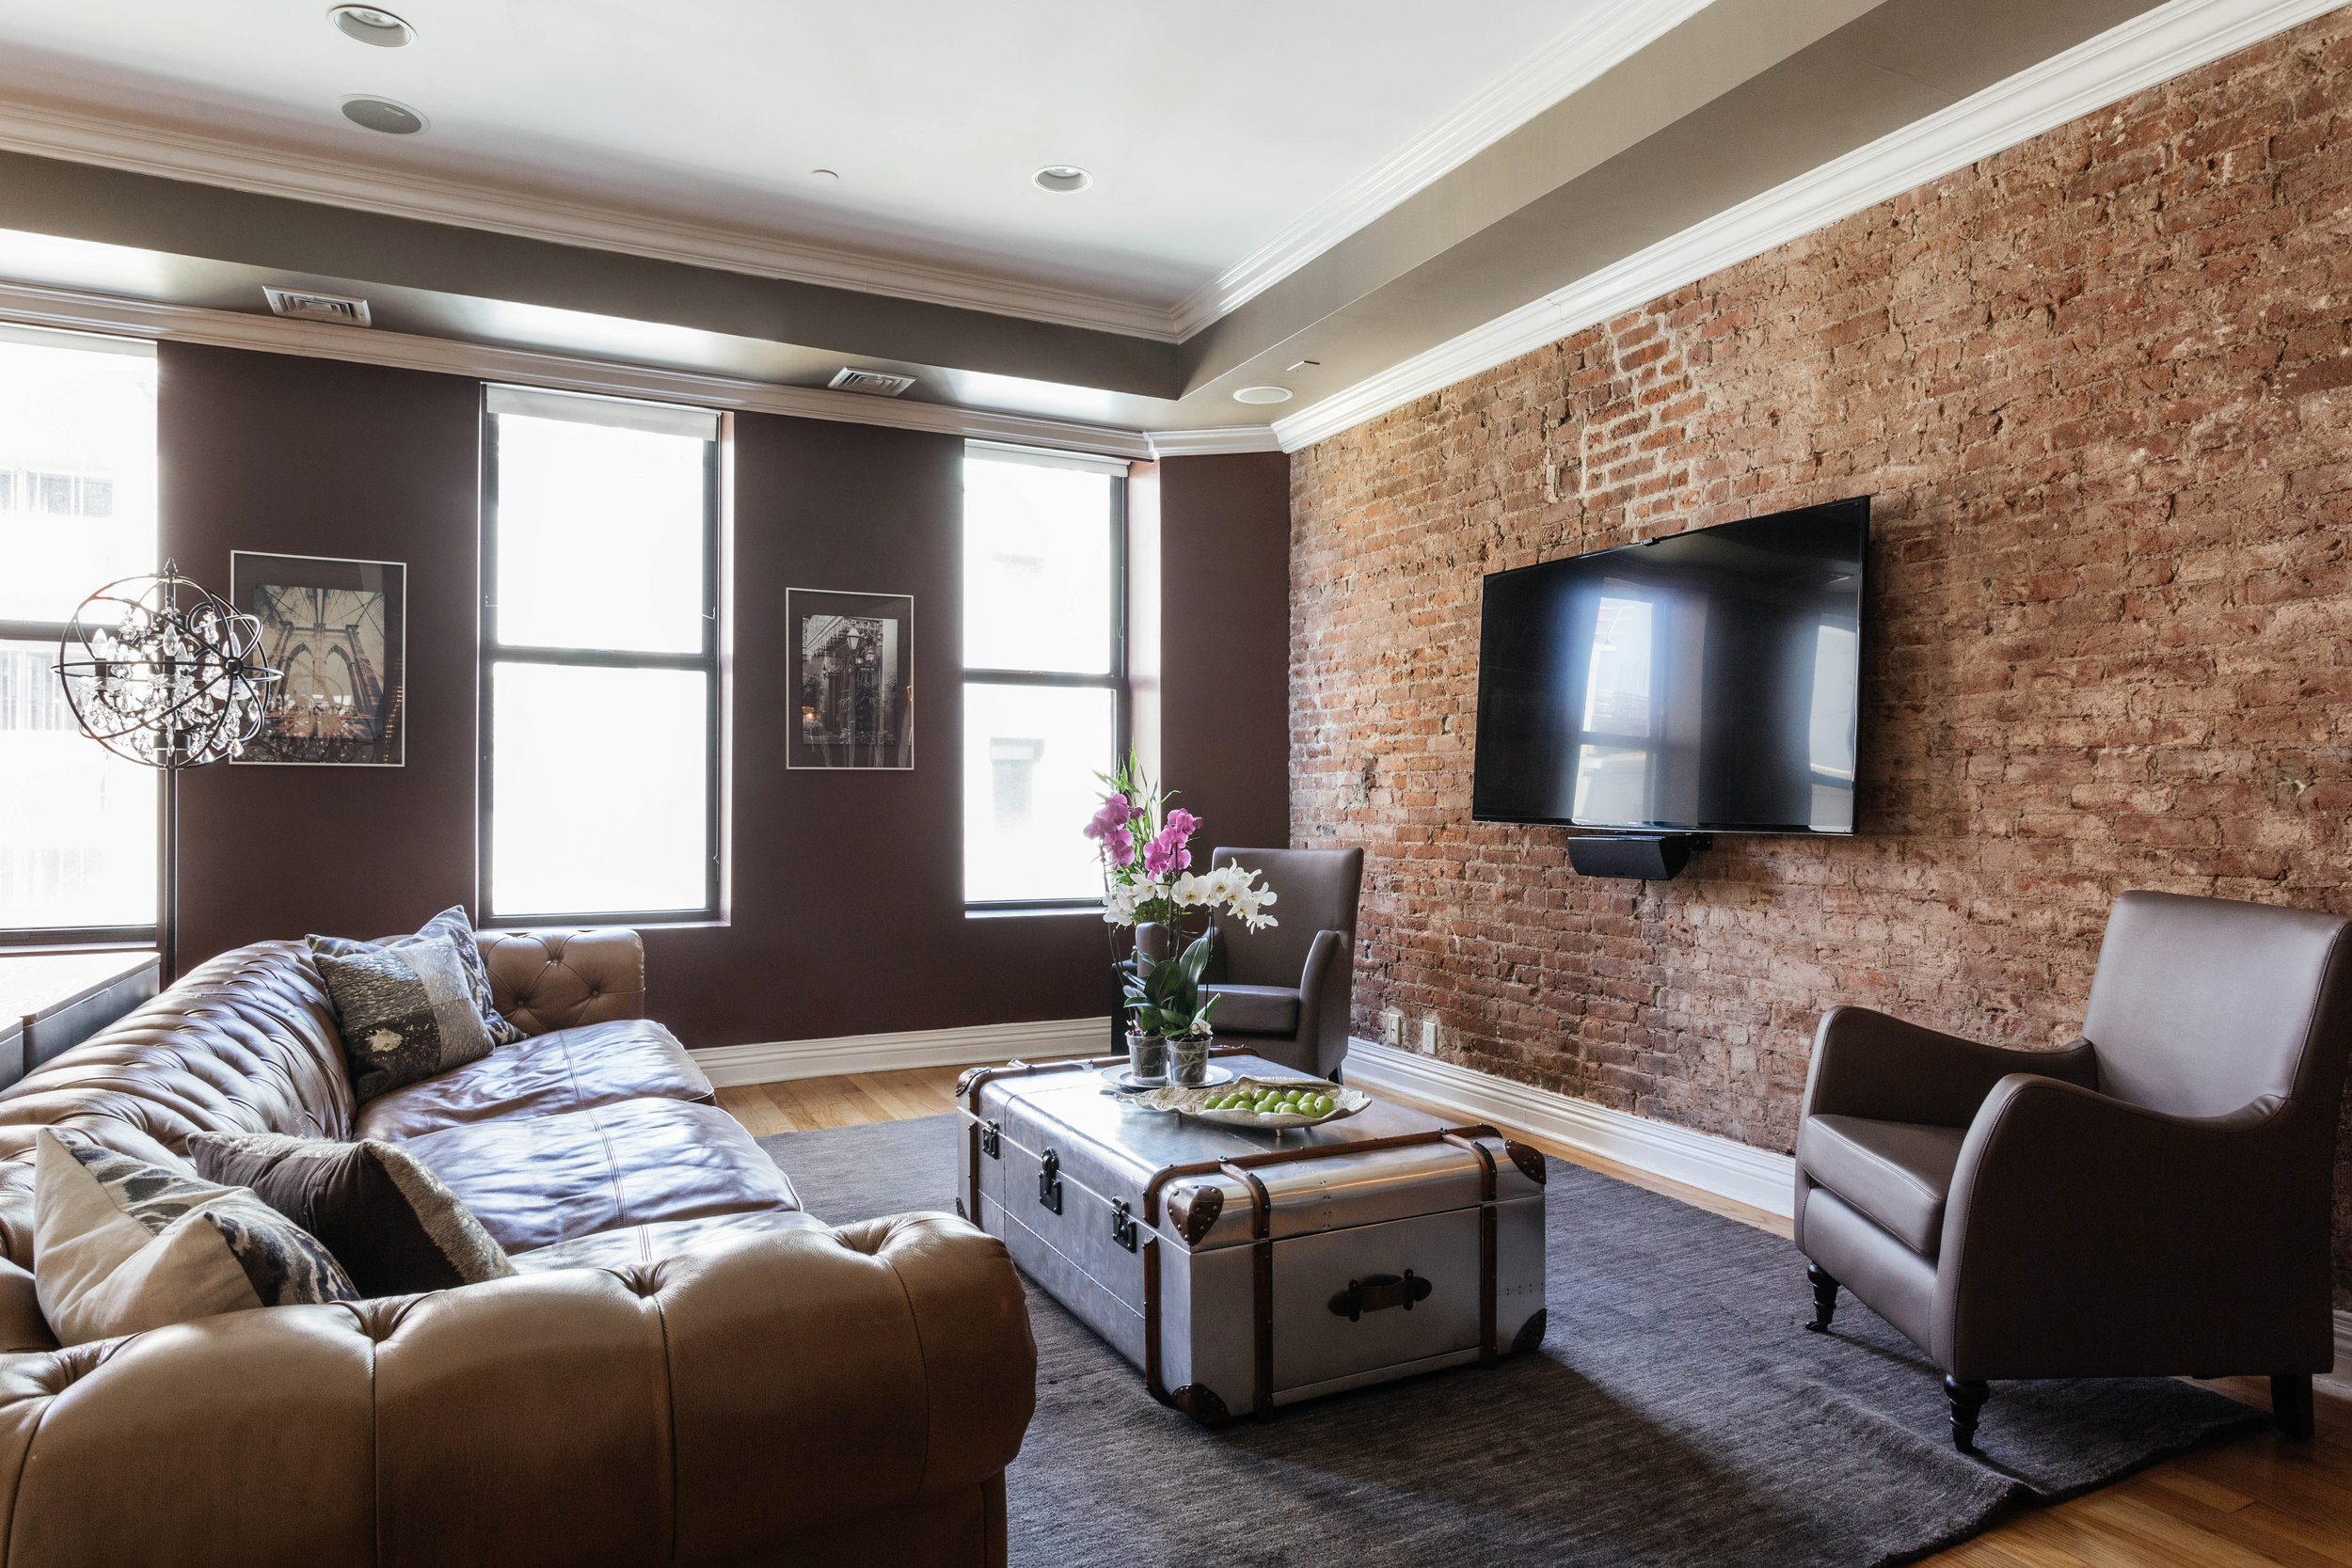 Modern living room with brown leather sofa and tv mounted on exposed brick wall